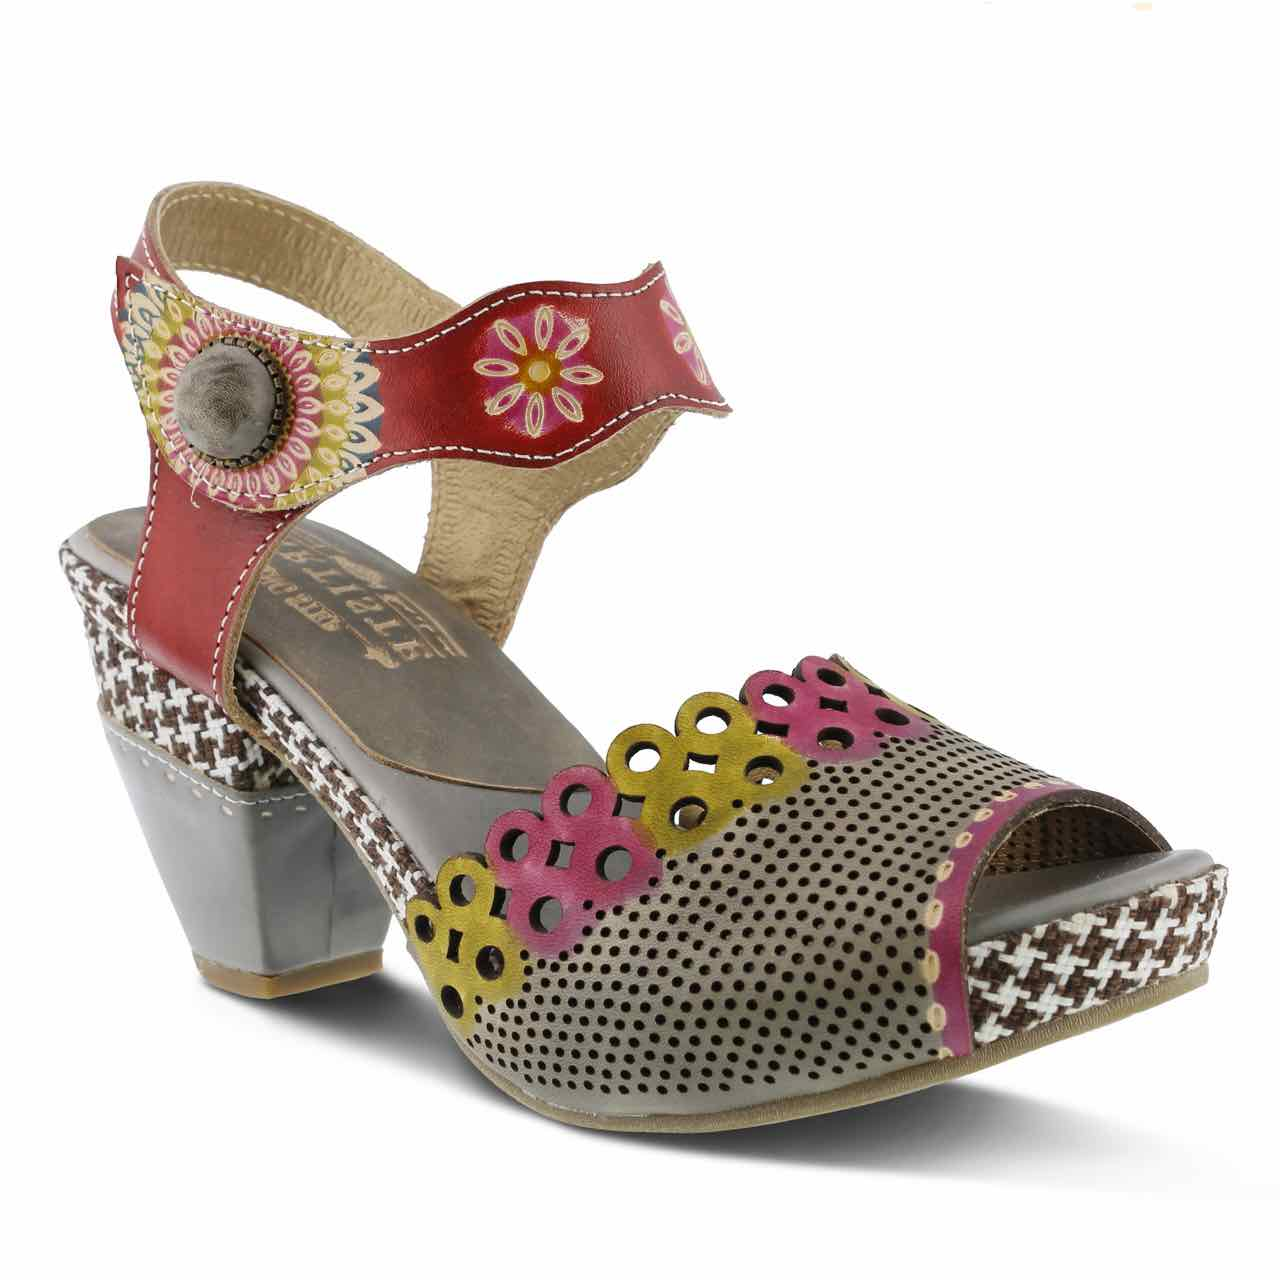 L'Artiste by Spring Step Sandals Jive, Gray